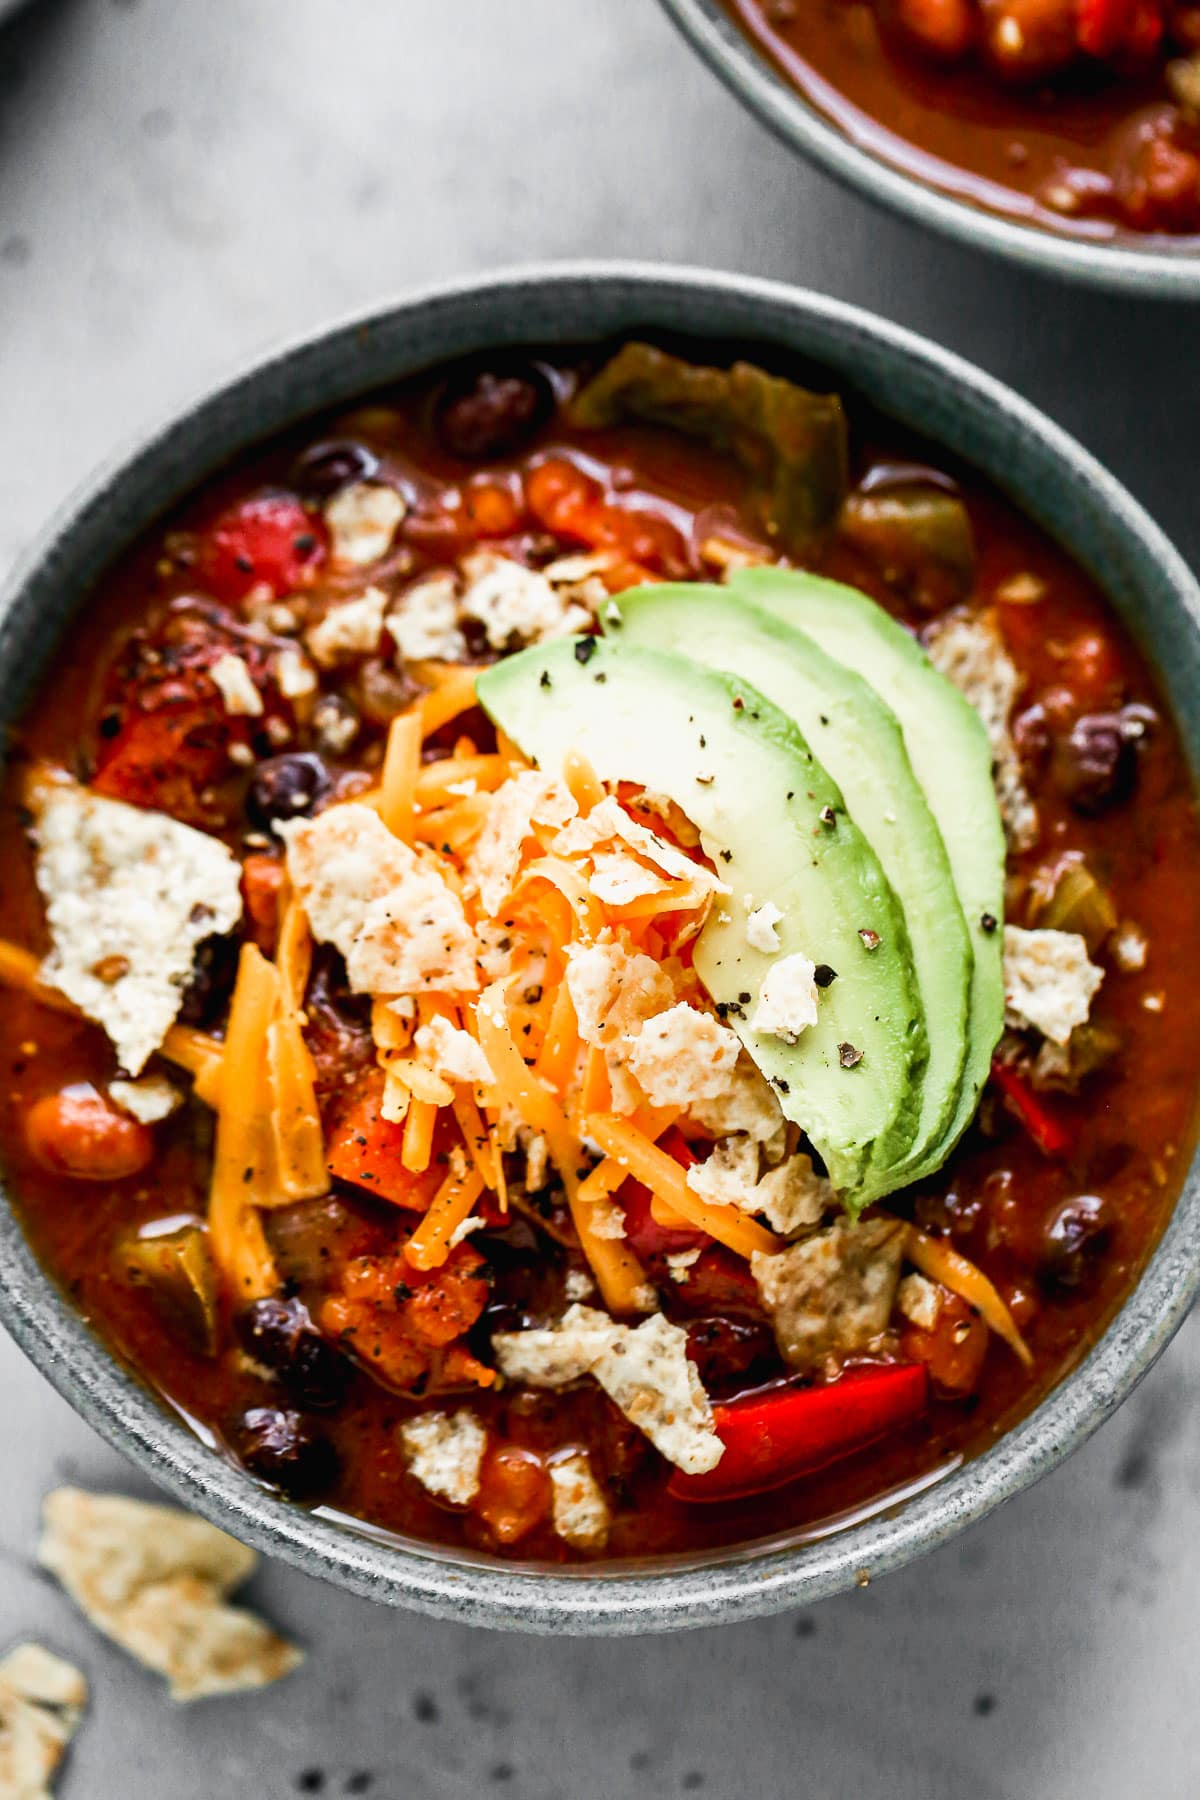 A bowl of hearty vegetarian chili